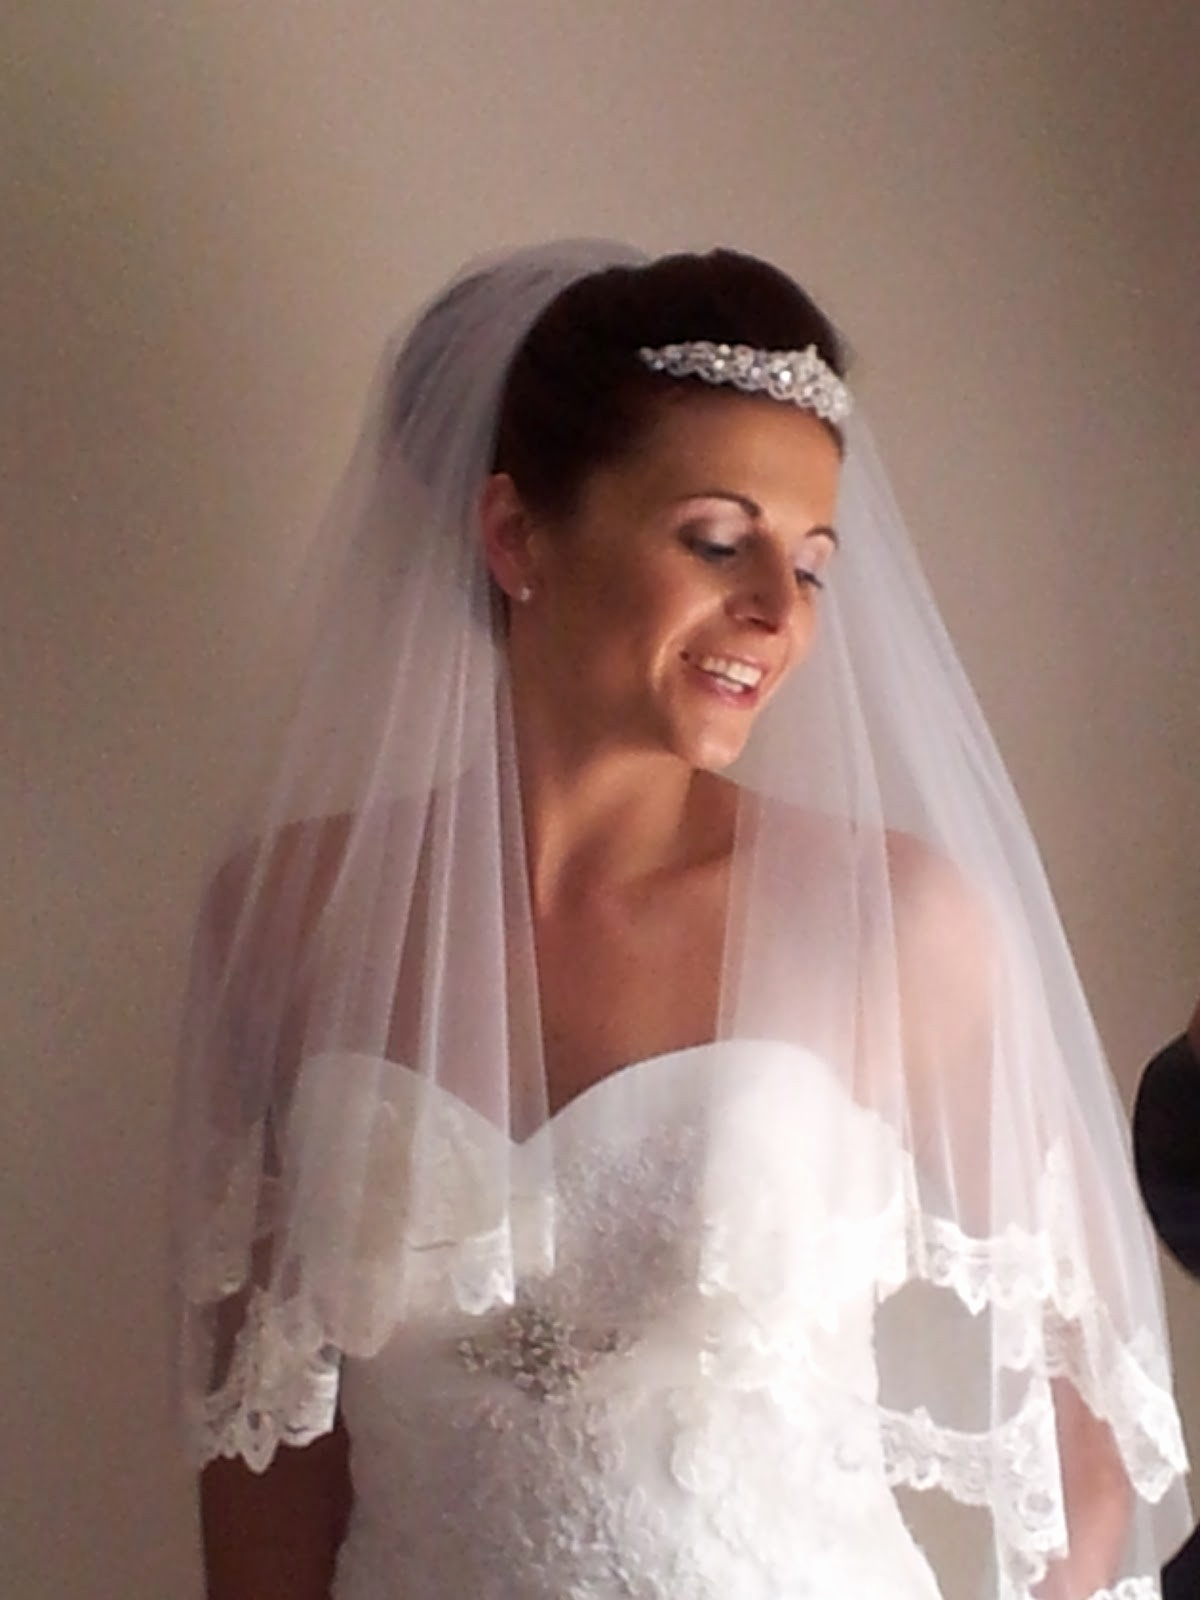 Wedding Hairstyles With Veils Marvelous Wedding Hairstyles With Veil Intended For Famous Wedding Hairstyles With Veil Over Face (View 6 of 17)